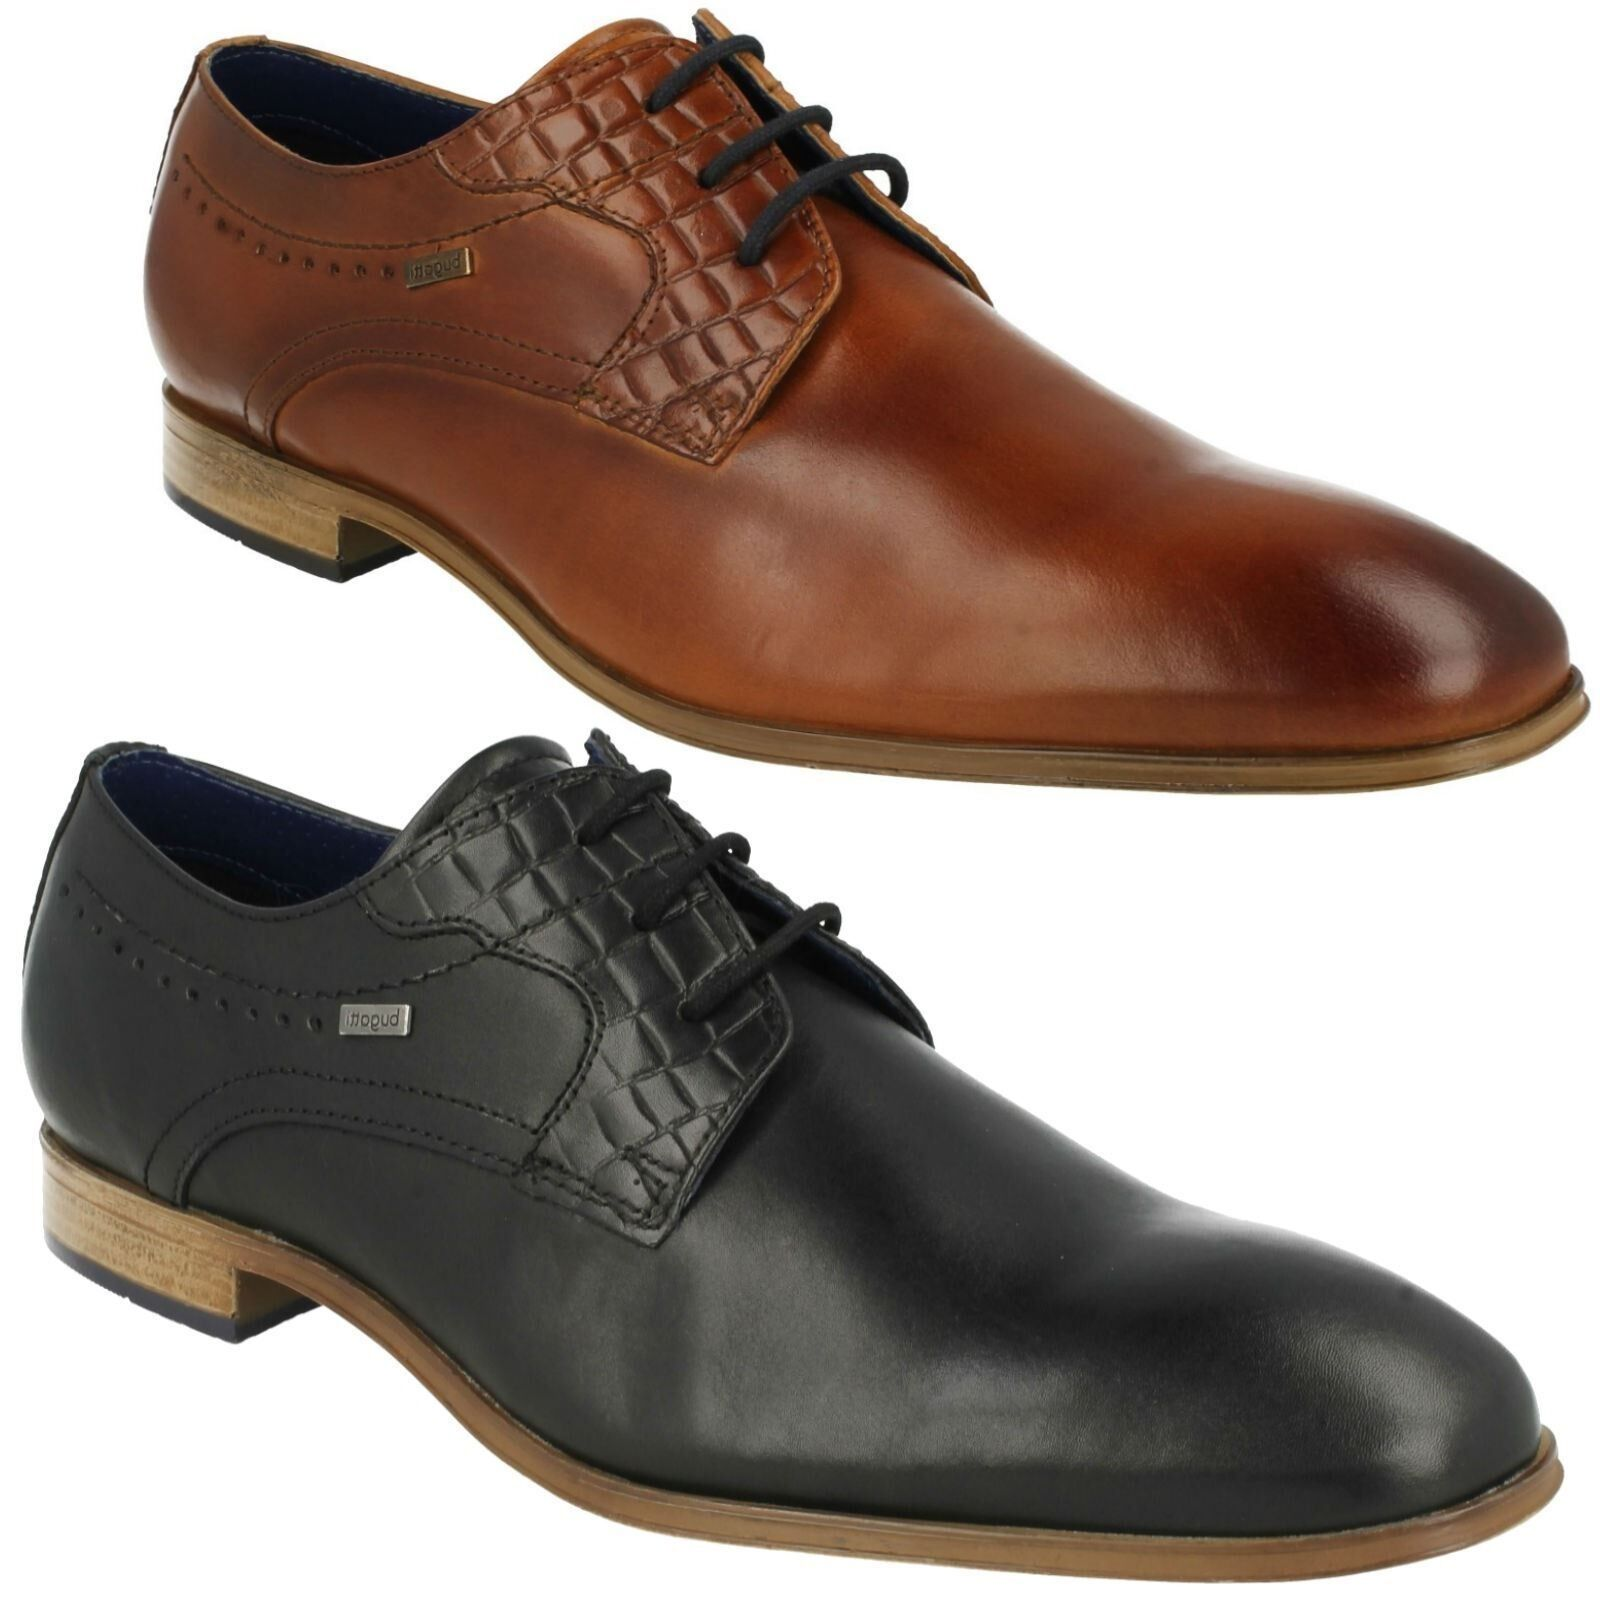 MENS BUGATTI LEATHER LACE UP SMART FORMAL INTERVIEW INTERVIEW INTERVIEW WEDDING SHOES 311-25202 ab05e3